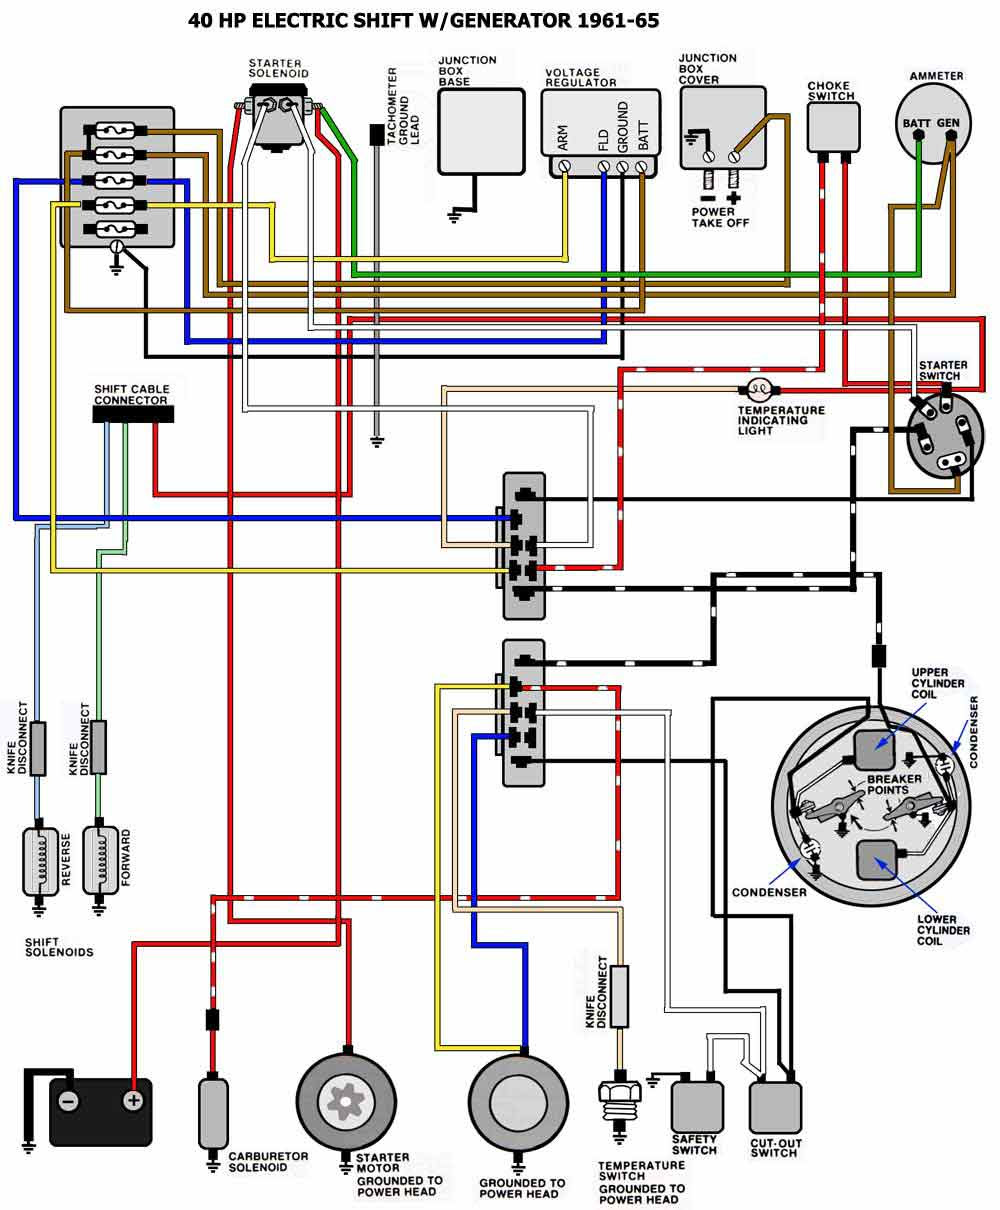 1985 Mercury Outboard Wiring Diagram Mustang 1995 5 0wiring Diagram Bege Wiring Diagram